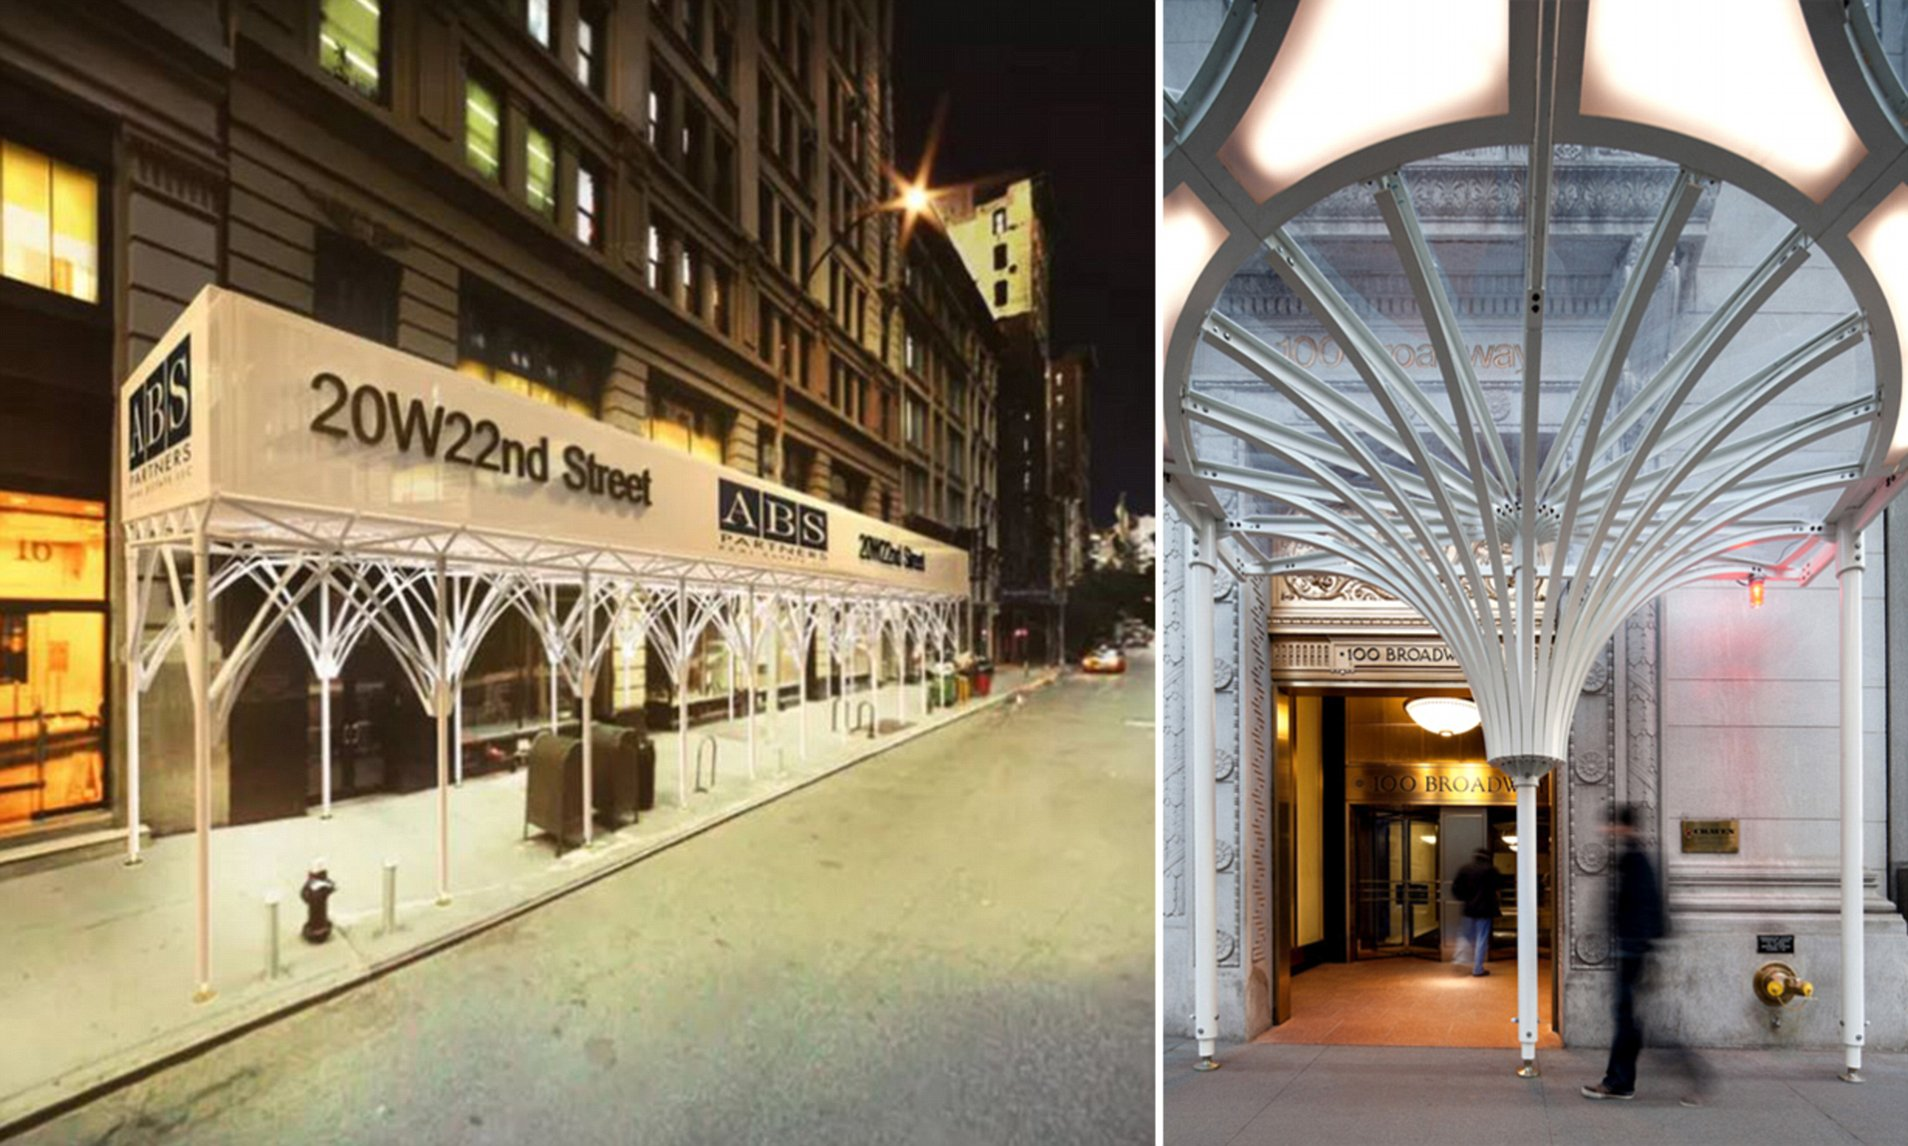 renderings of fancy white scaffolding on a sidewalk